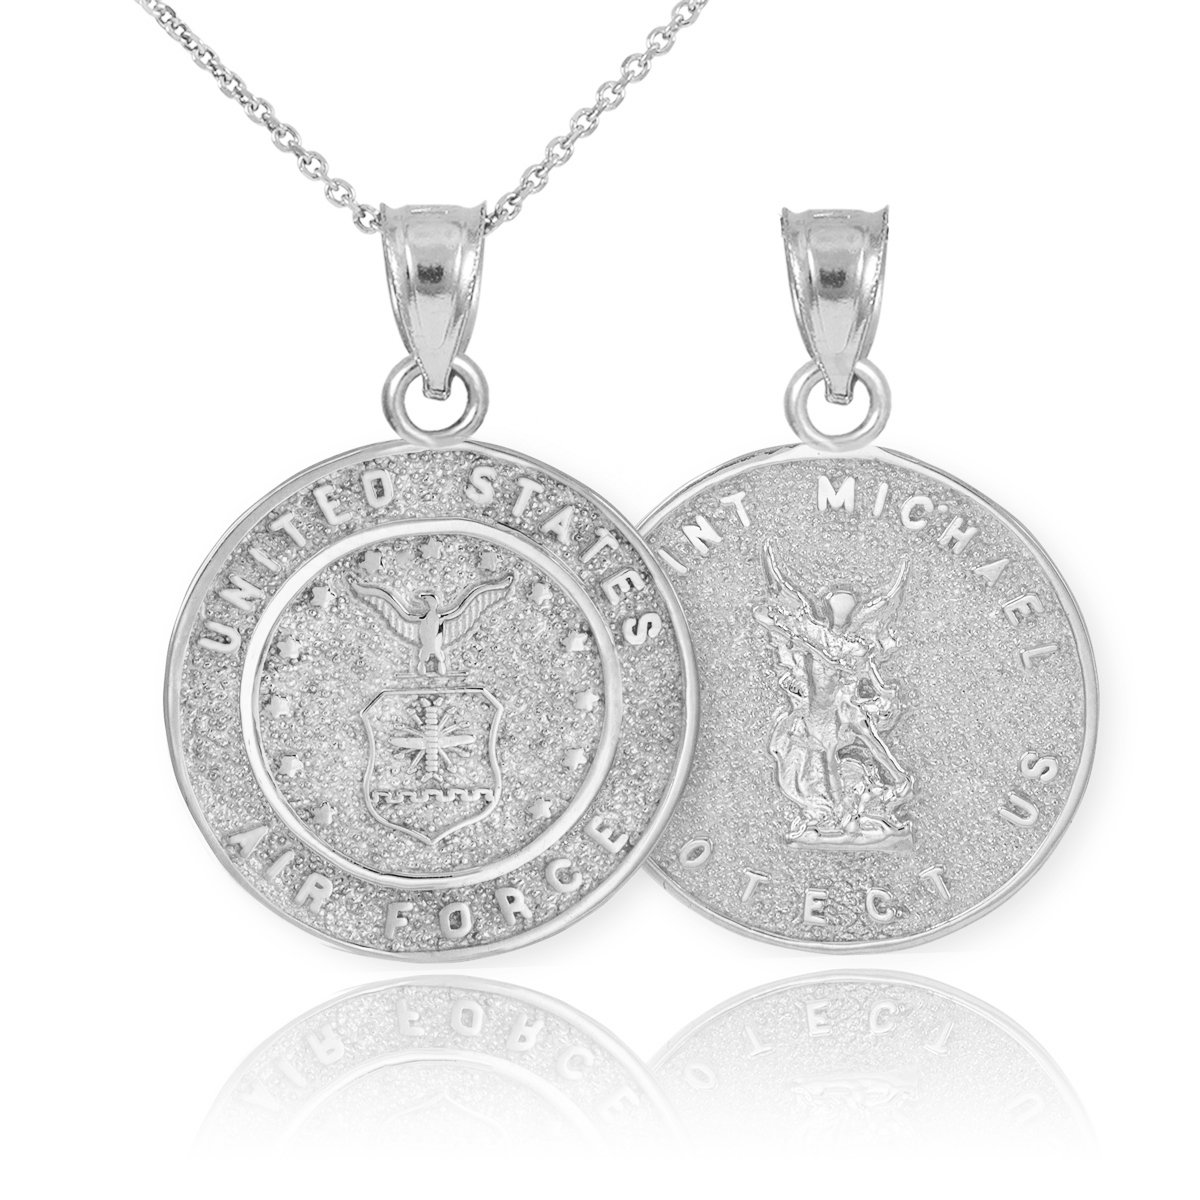 Reversible 10k White Gold St Michael Medal Protection Charm US Air Force Pendant Necklace, 22''